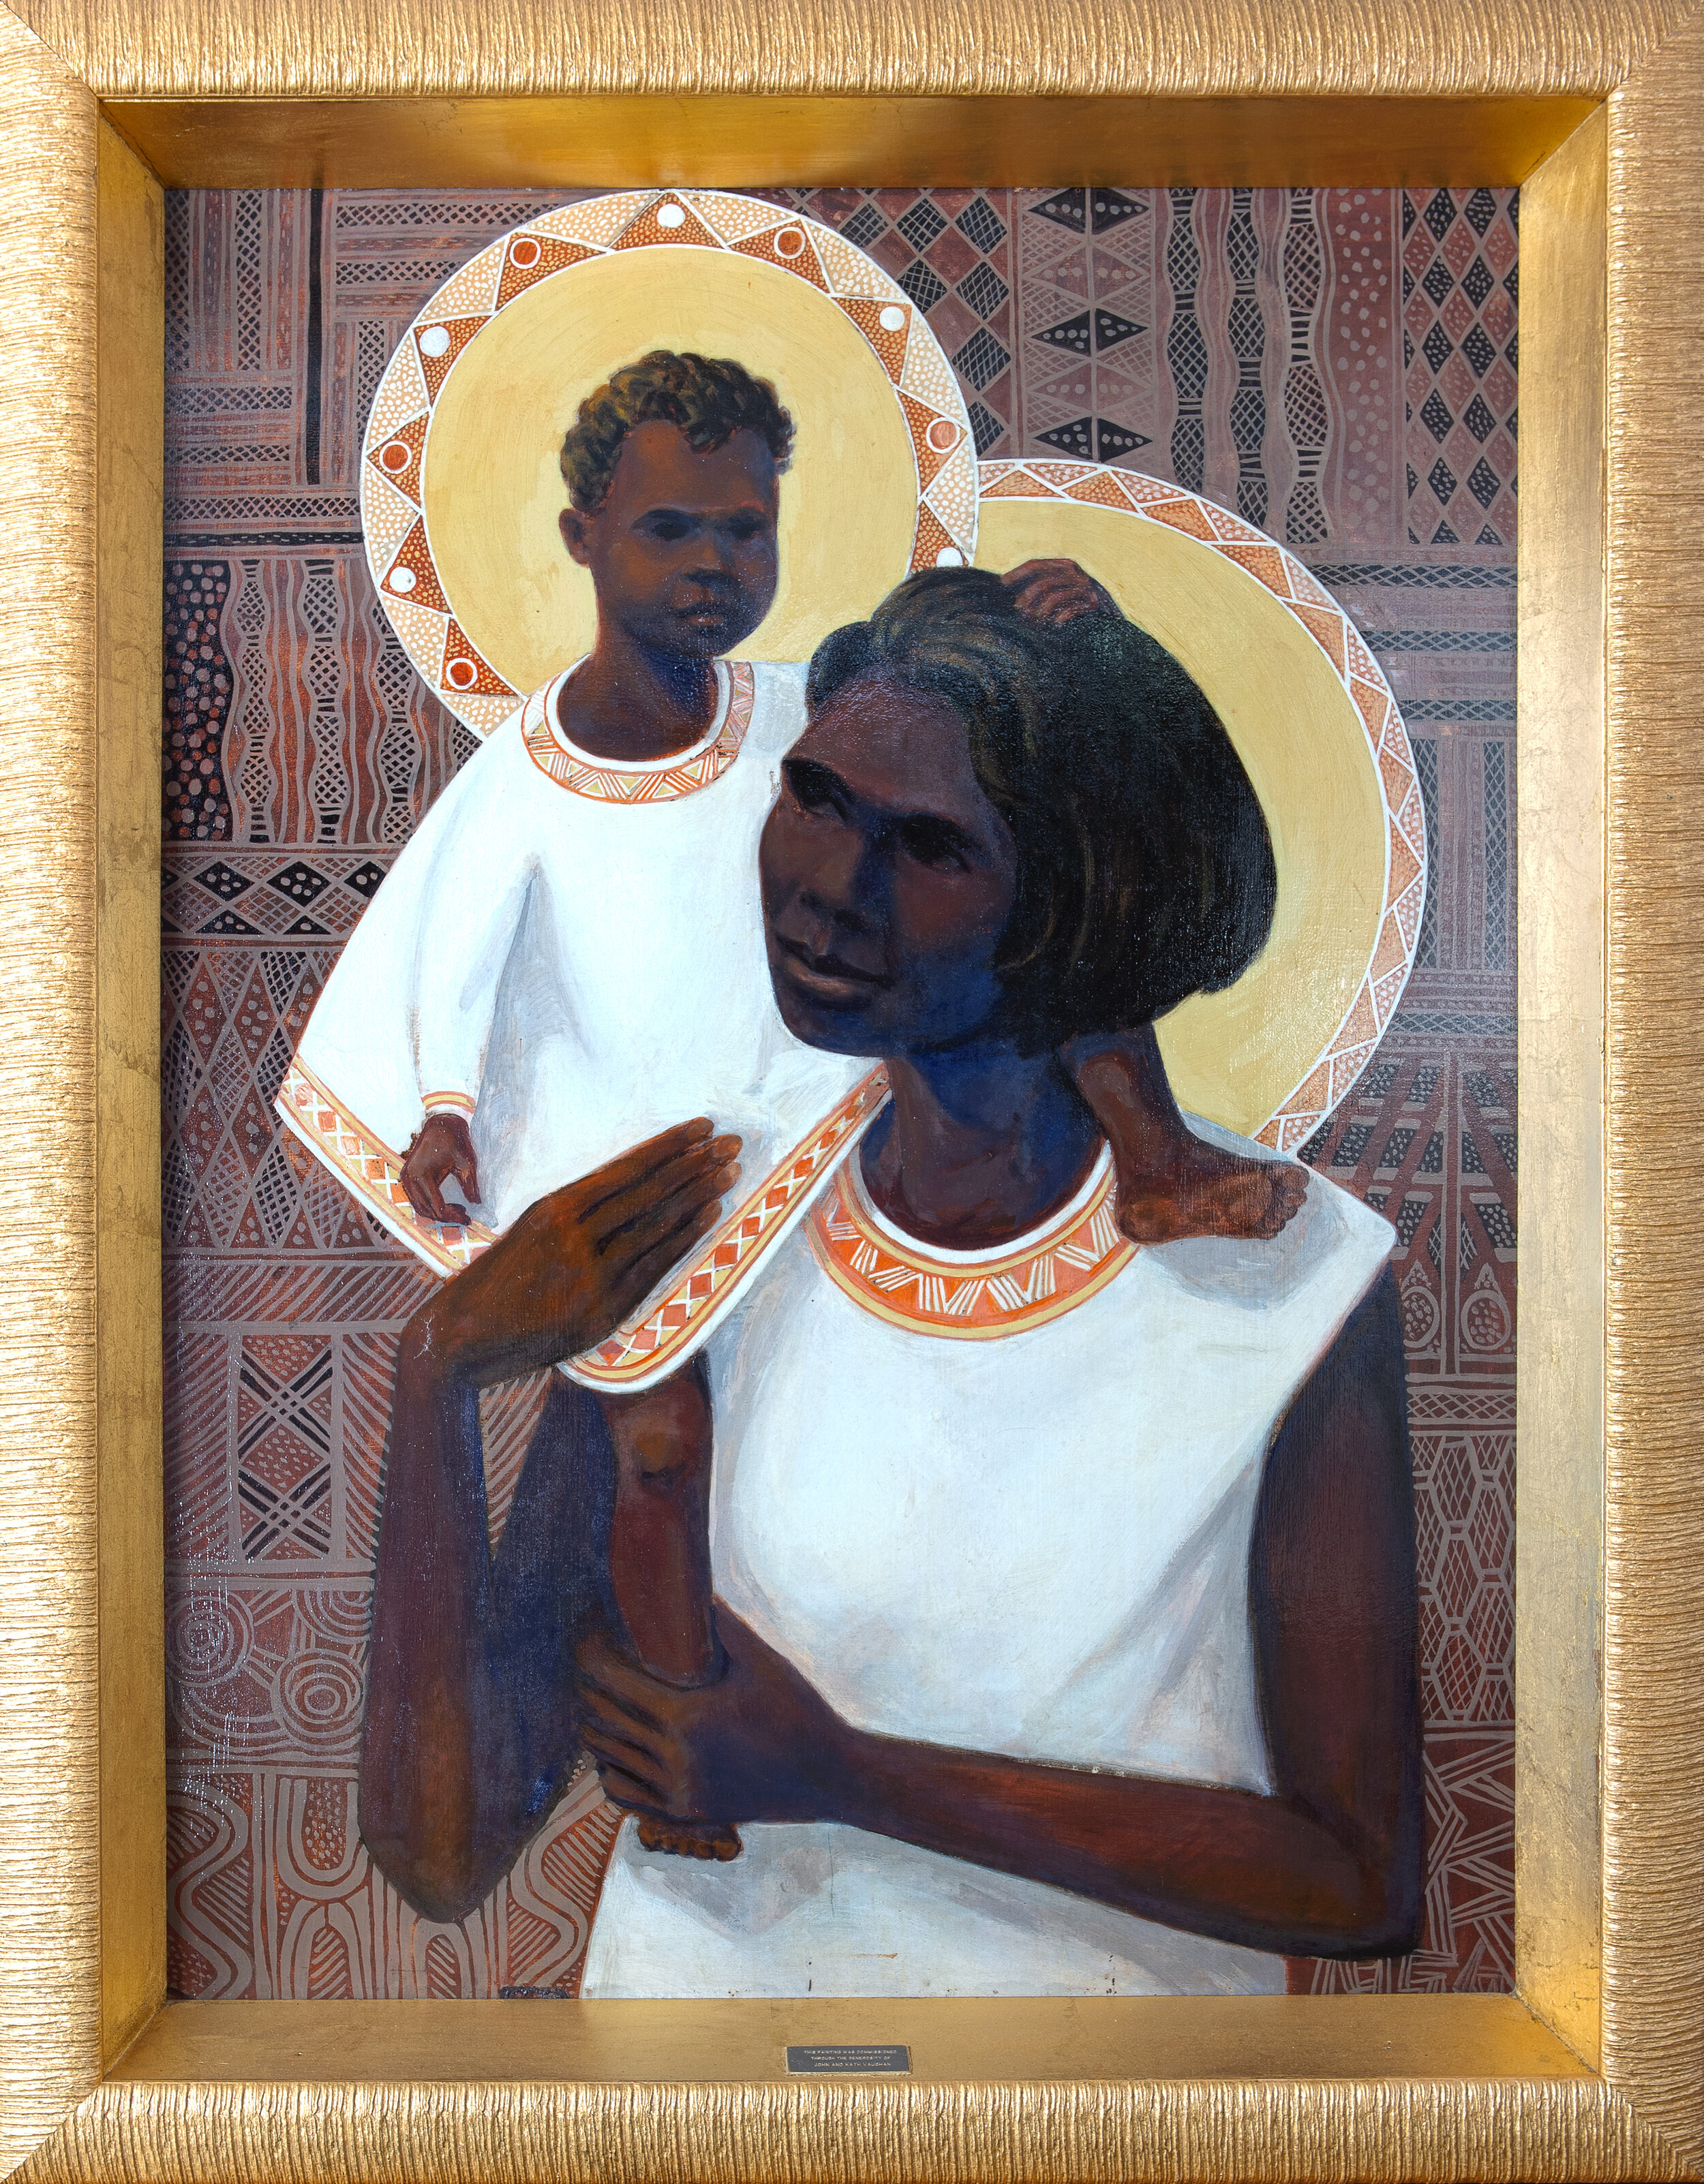 Image credit:  The Madonna of the Aborigines by Karel Kupka - Diocese of Darwin